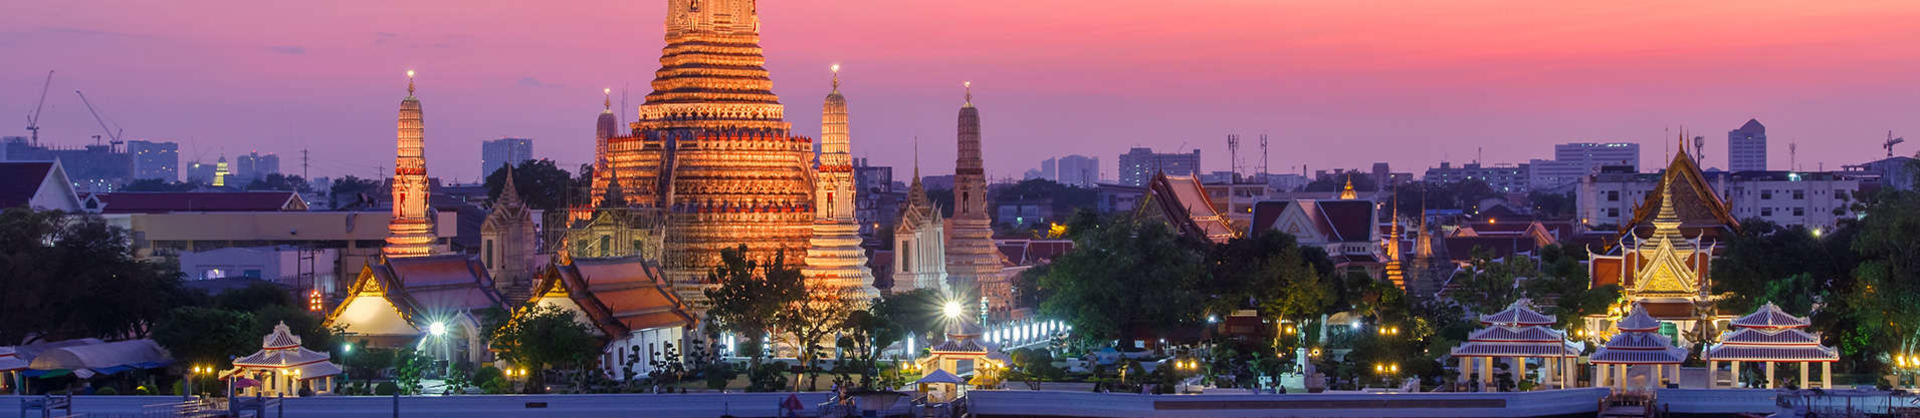 Bangkok city skyline at sunset